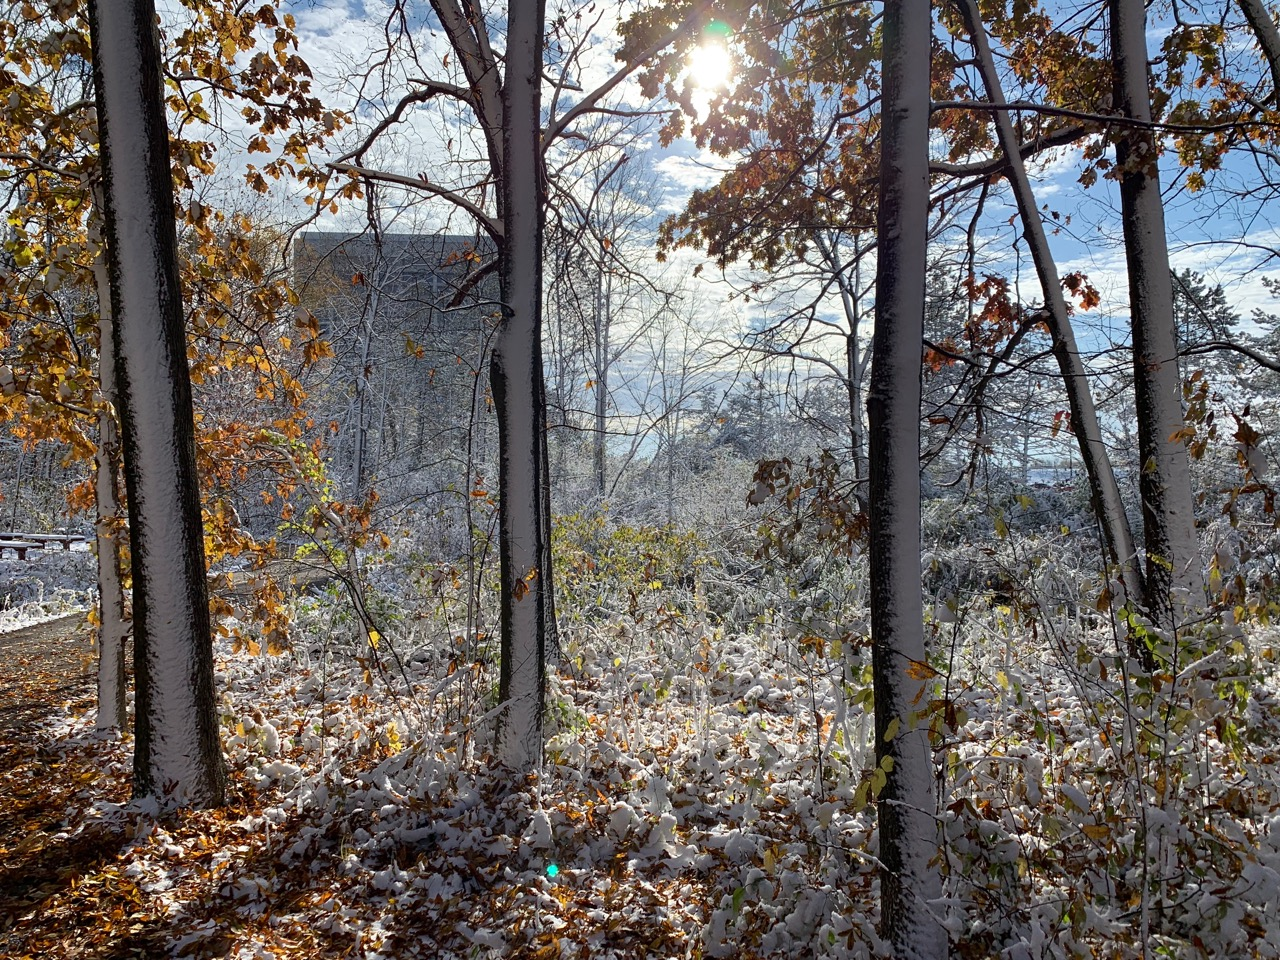 Autumn and winter blend in this Nov. 1 scene of the woods between Wilson Hall, visible in the background, and the Lederman Science Center. nature, landscape, building, Wilson Hall, autumn, fall, winter, woods, plant, tree Photo: Michael Baird